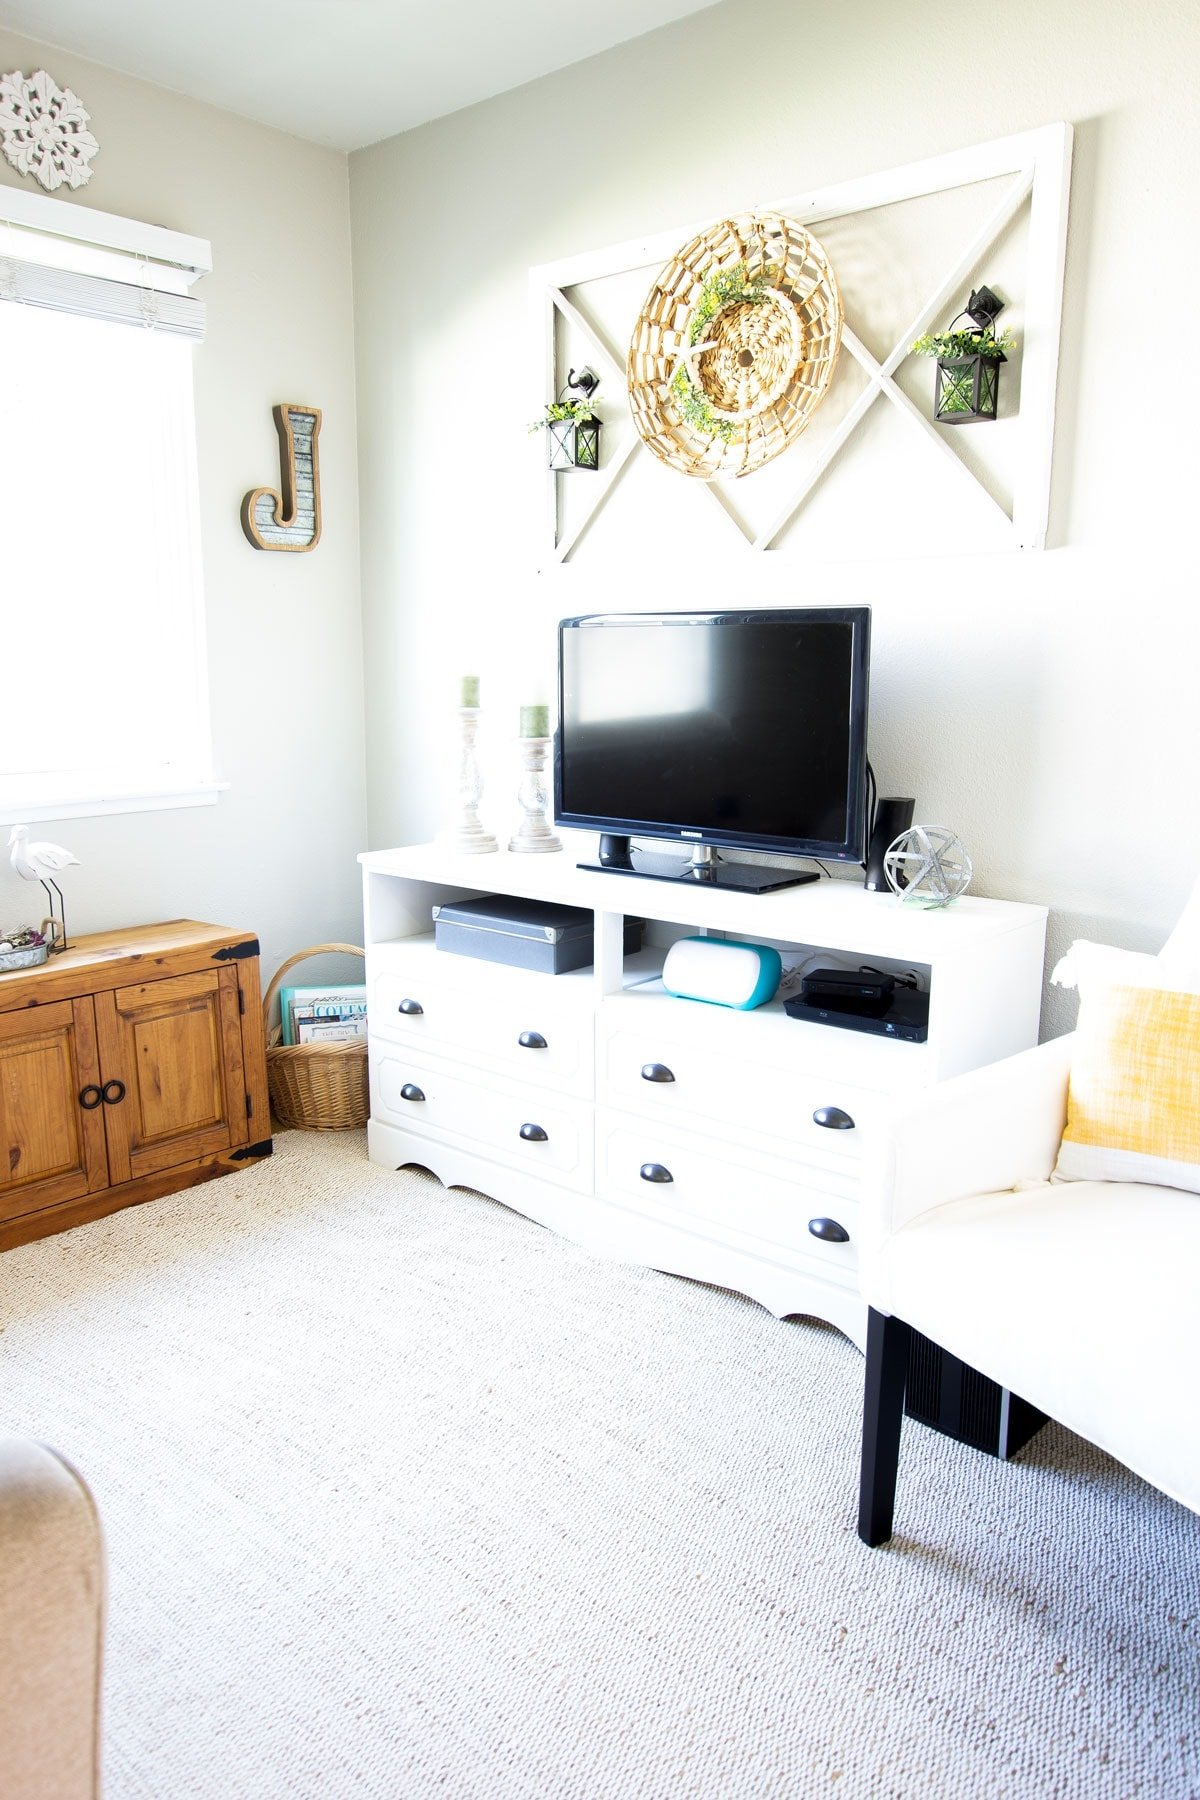 apartment summer decor tips iving room with furniture and summer decor